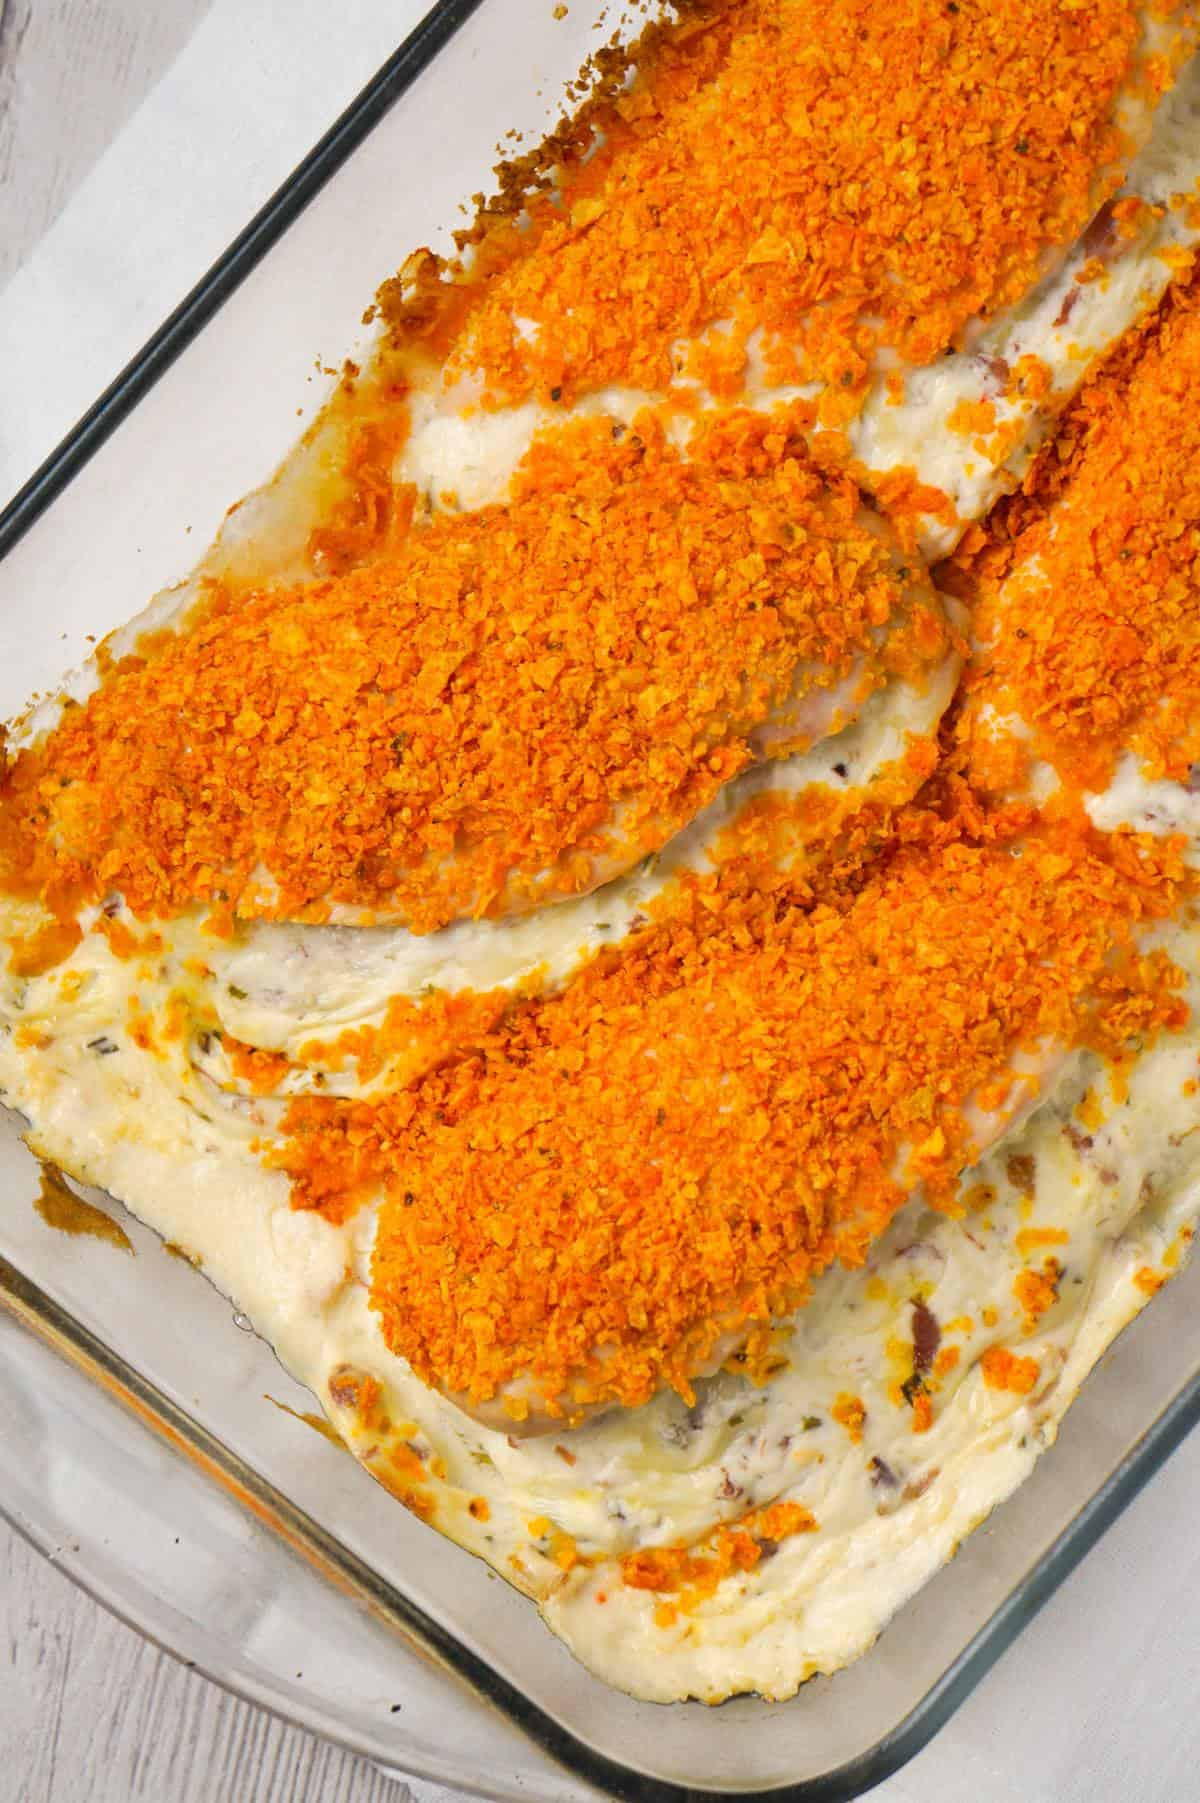 Cream Cheese and Bacon Stuffed Doritos Chicken is a delcious stuffed chicken breast recipe made with chive and onion cream cheese, cream of bacon soup, cumbled bacon and crushed Doritos.